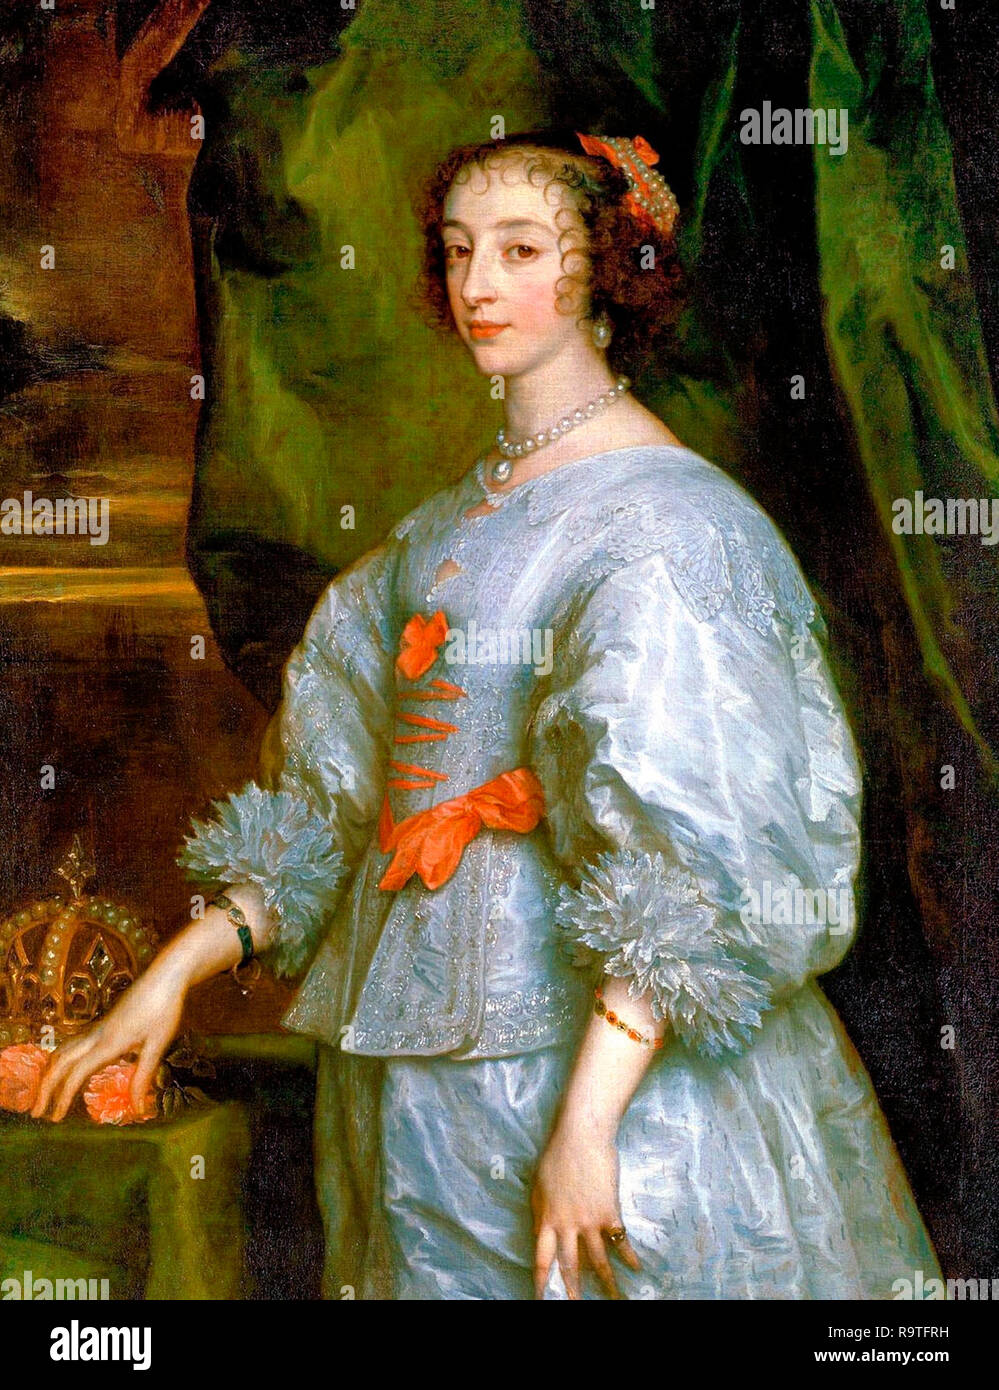 Princess Henrietta Maria of France, Queen consort of England. This is the first portrait of Henrietta Maria painted by Anthony van Dyck in 1632. - Stock Image